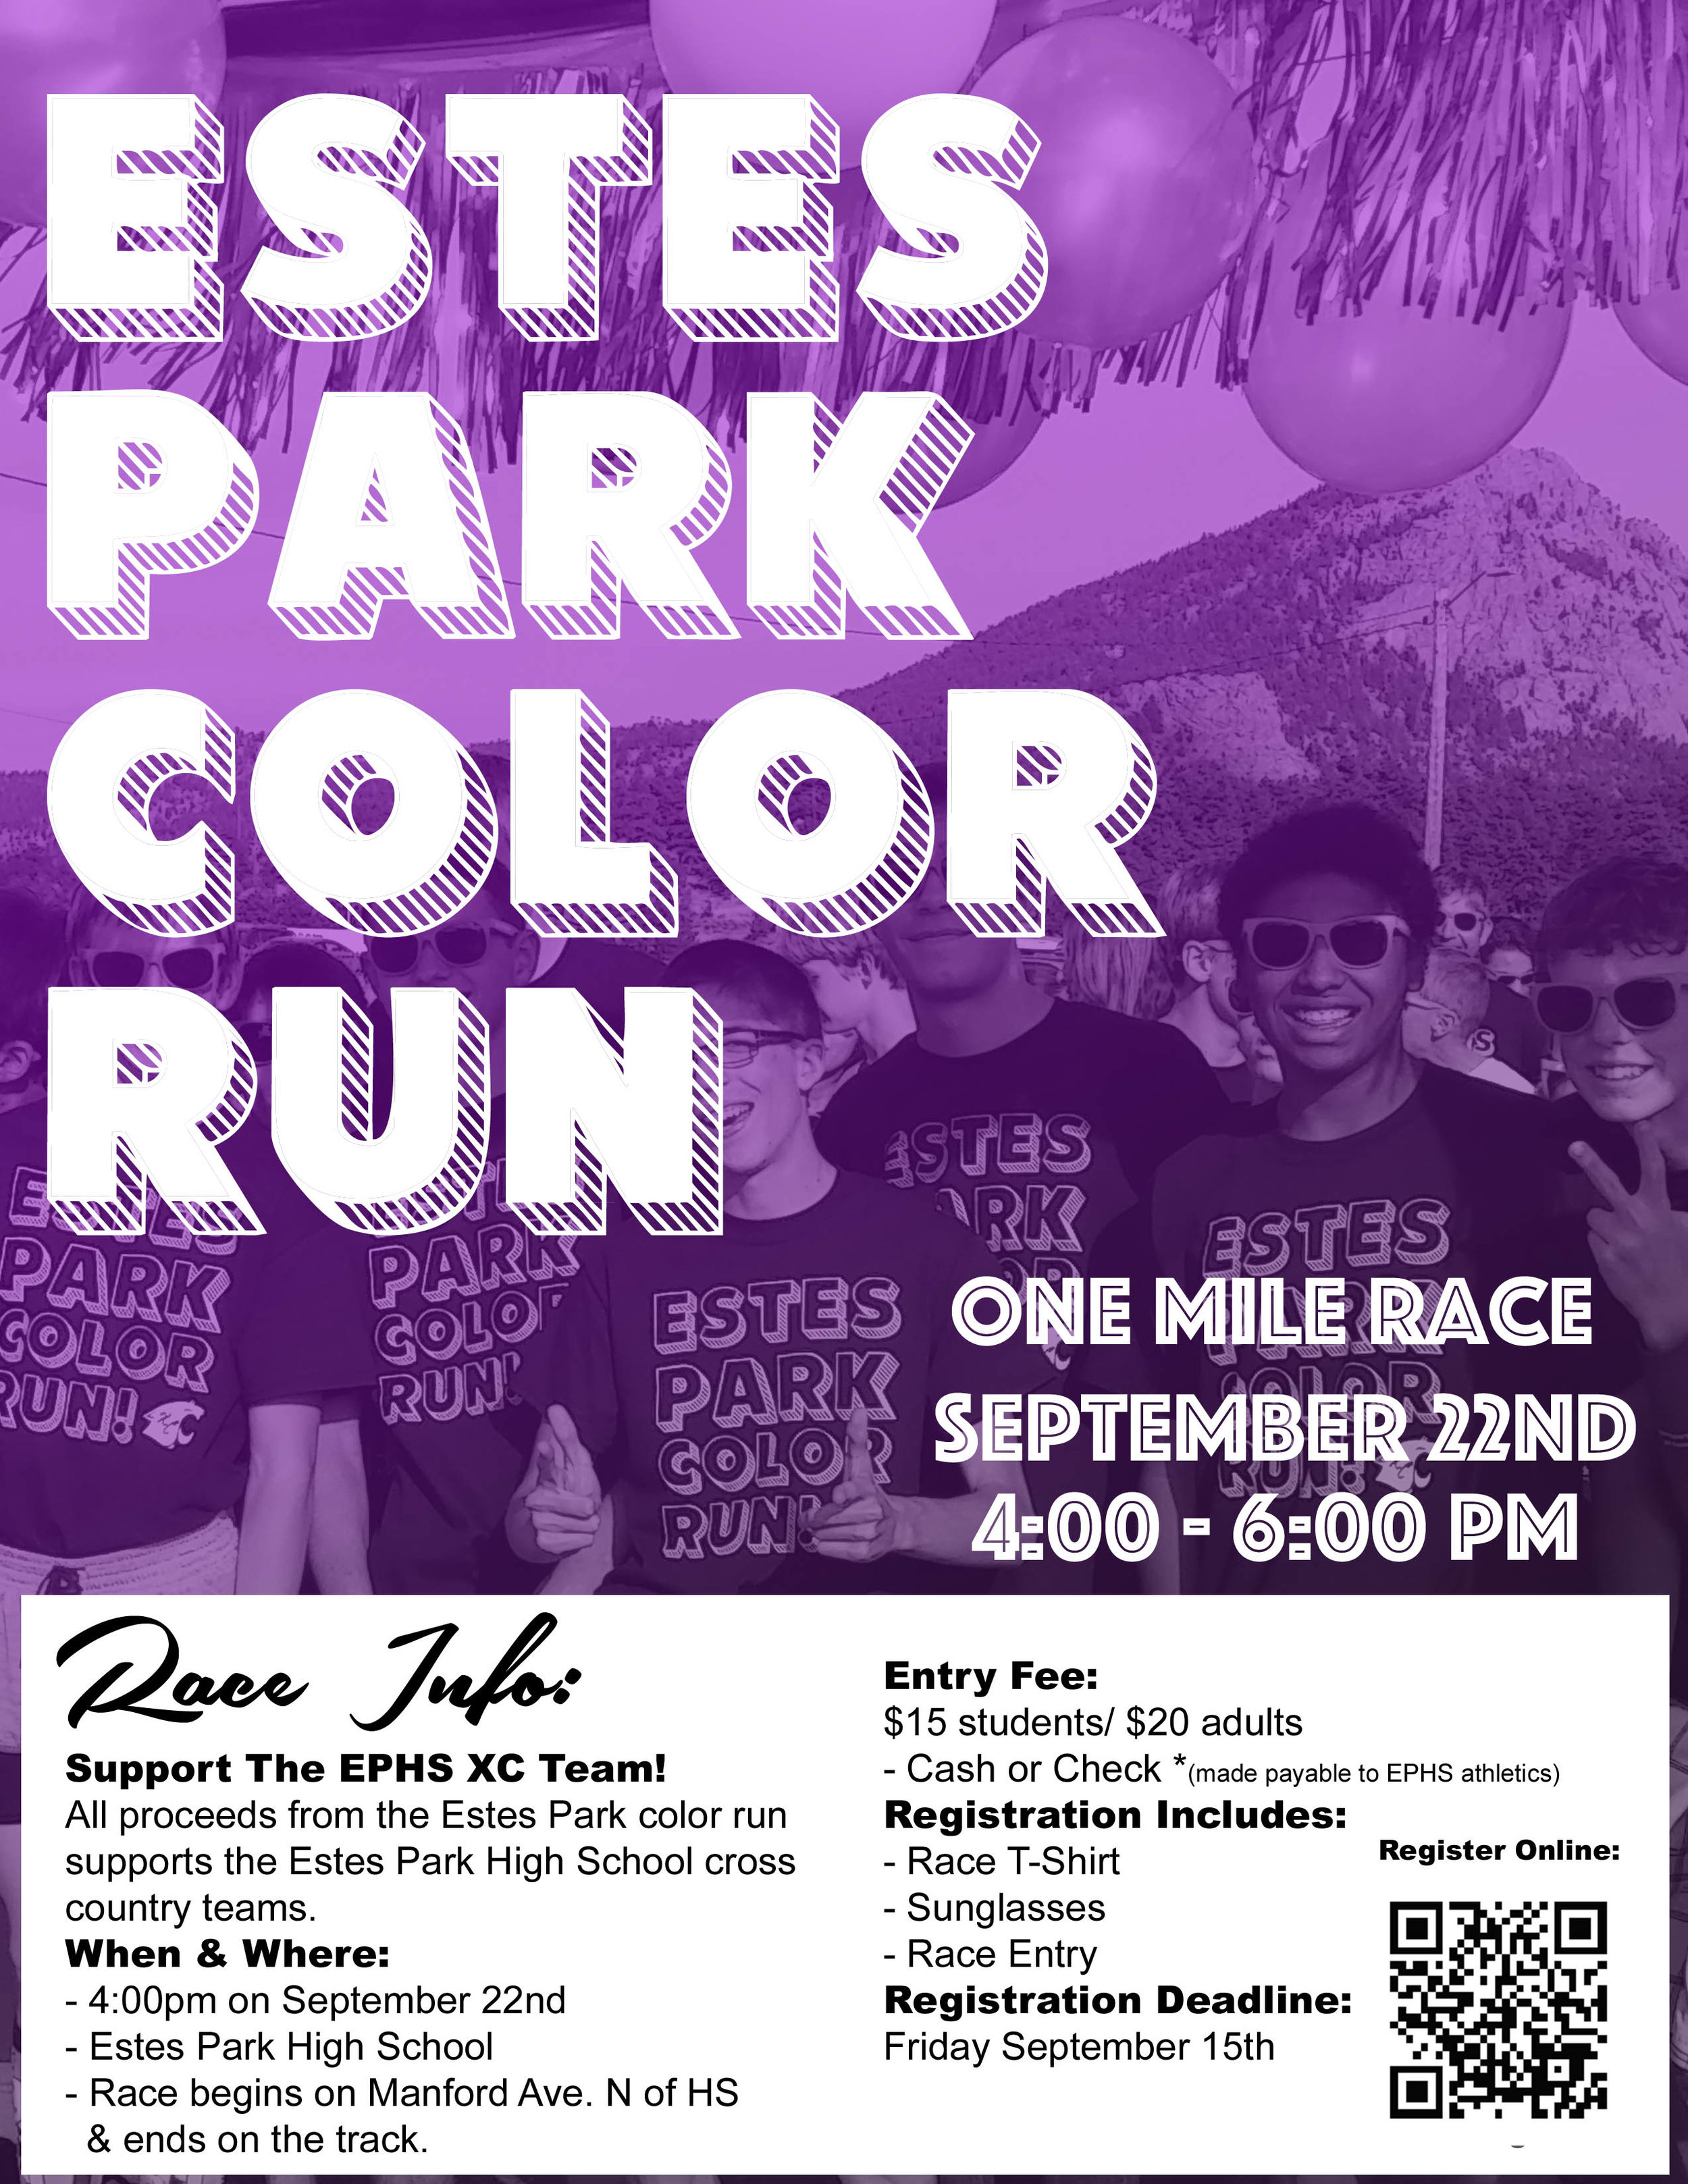 Color Run Poster 2017_edited-1.jpg